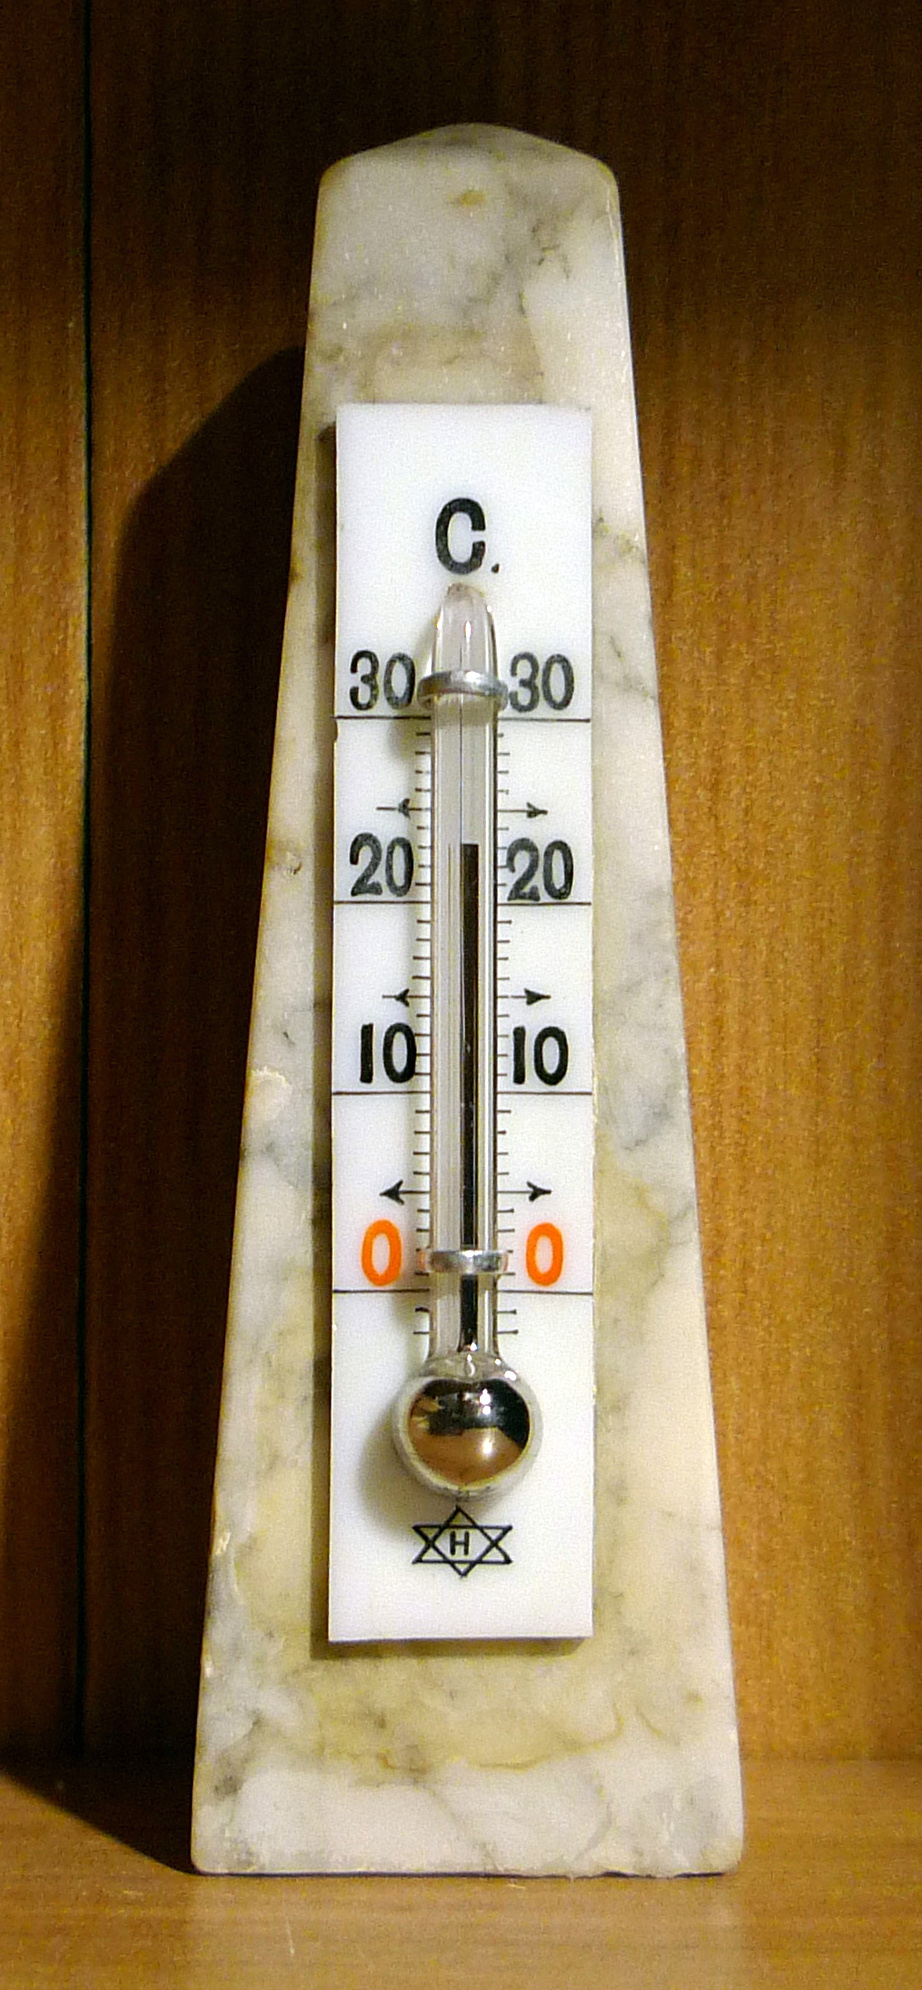 Room Temperature In Rankine